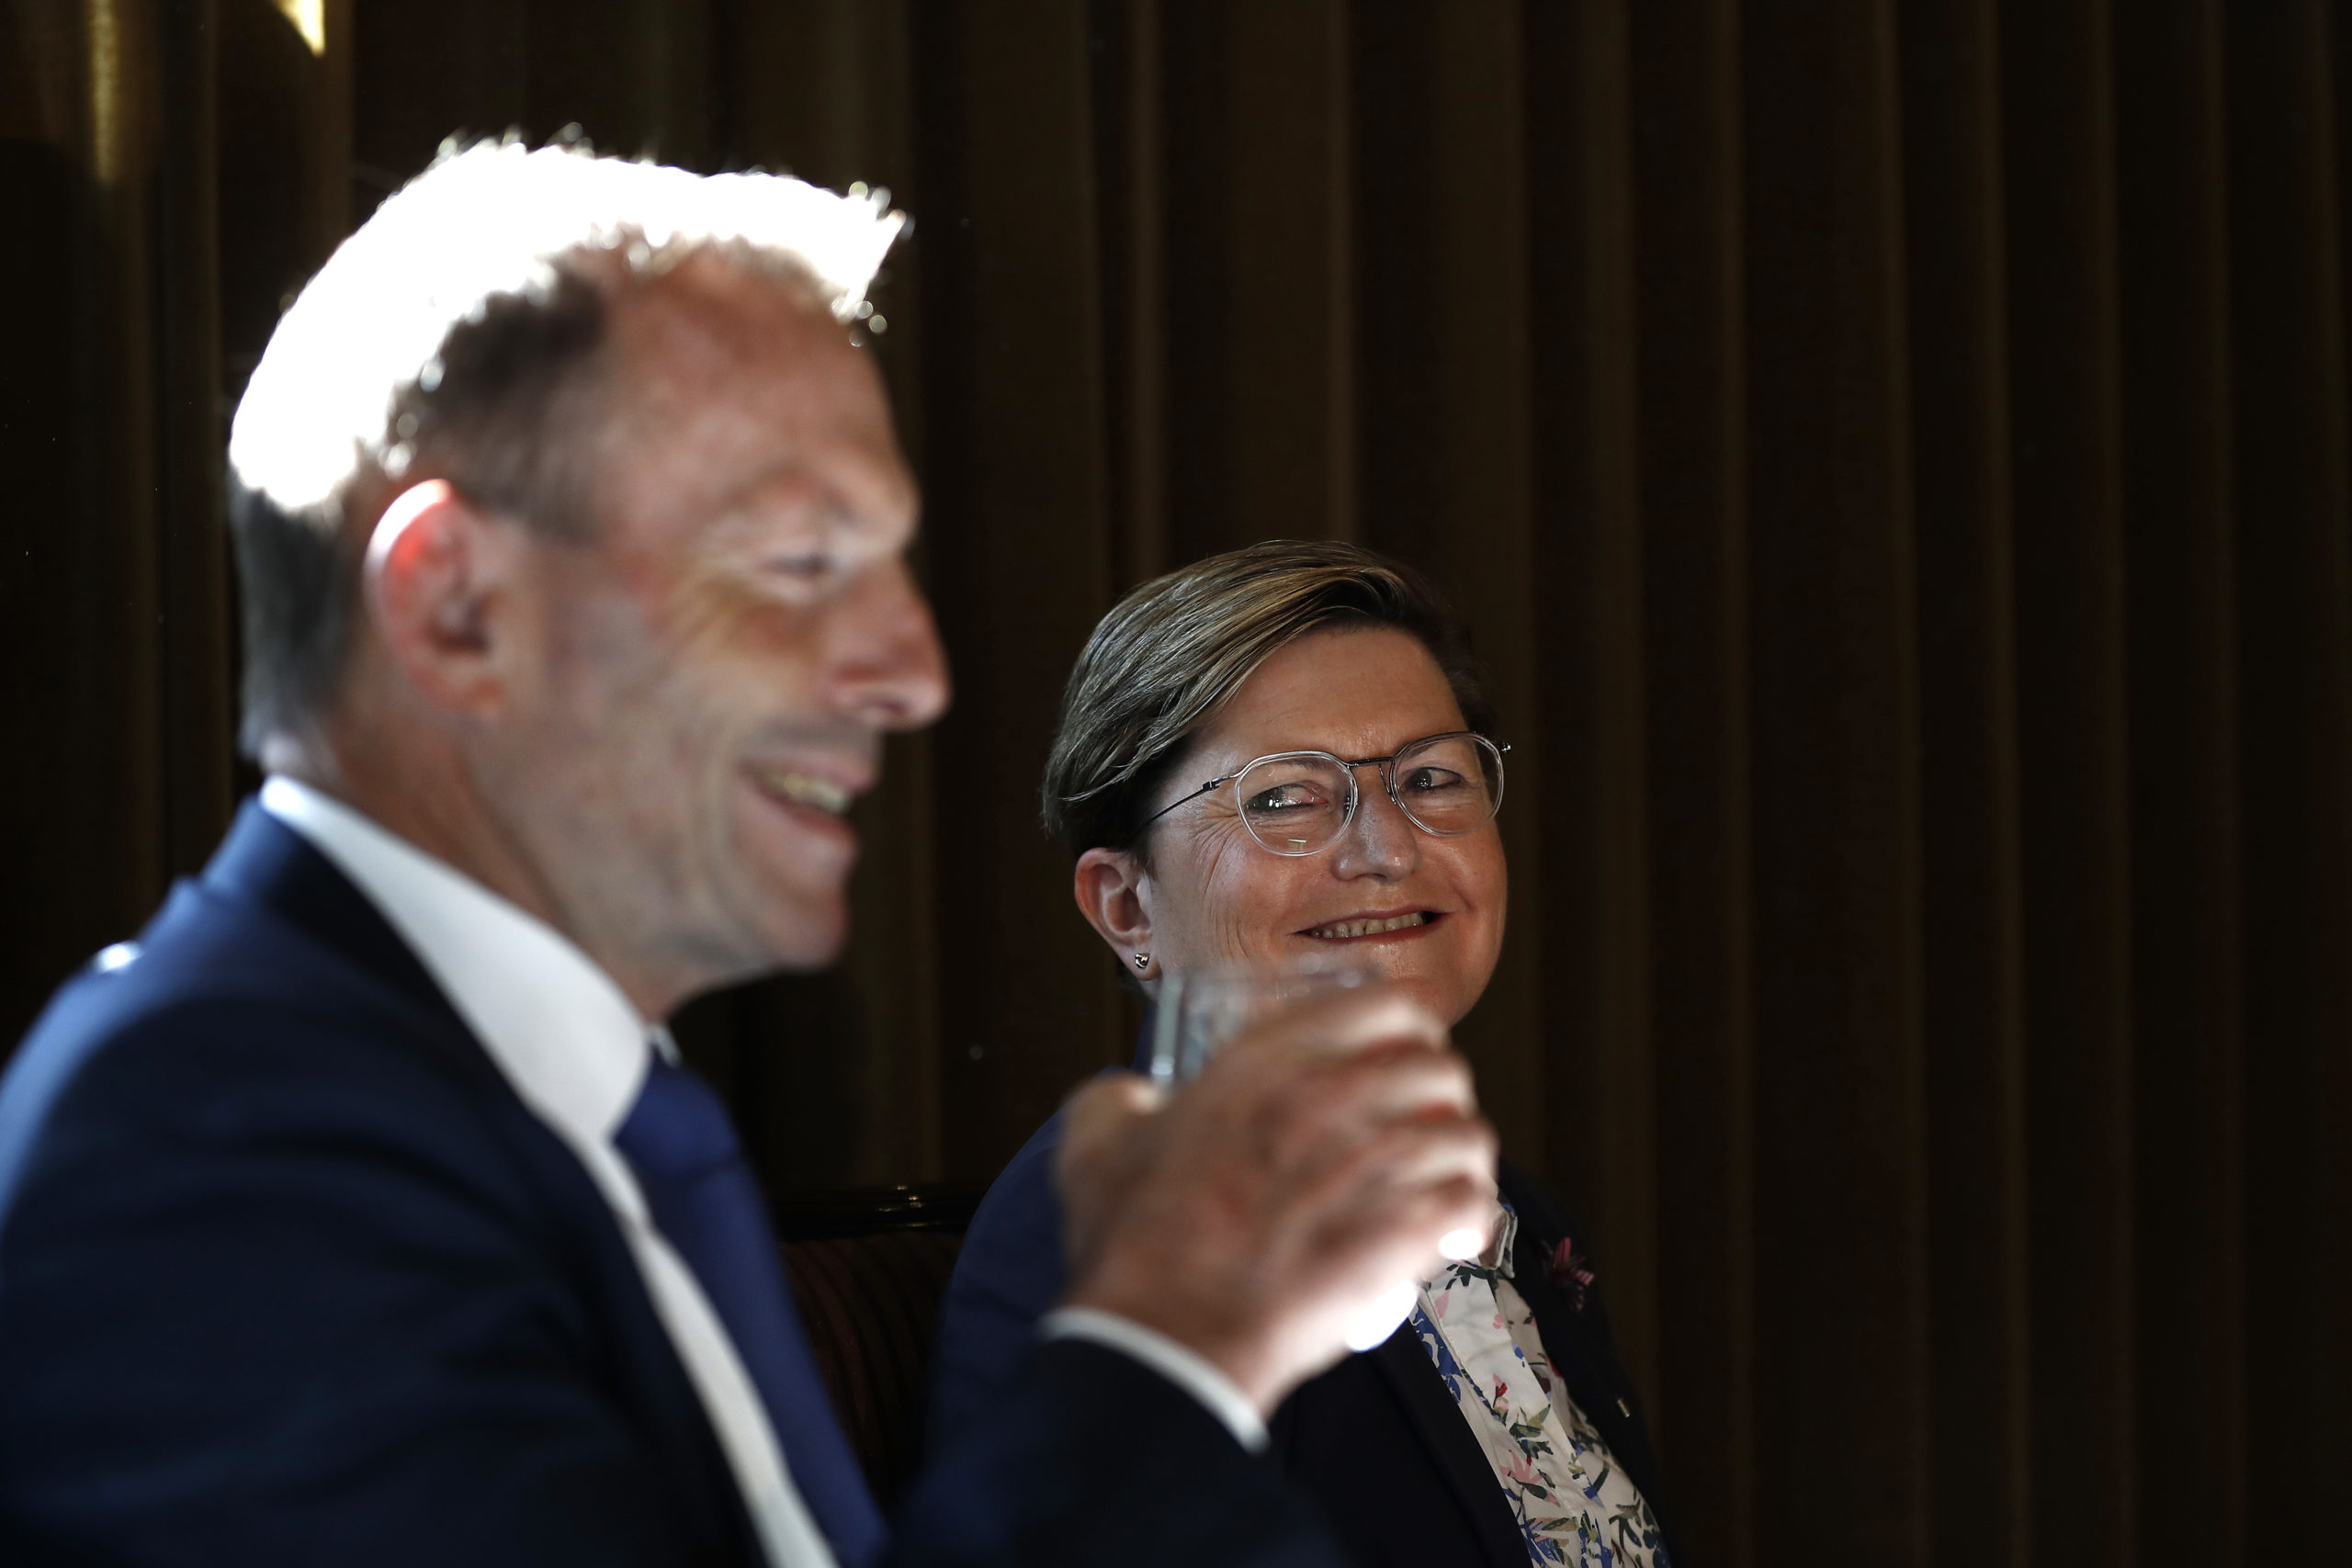 The lesbian sister of Tony Abbott, Christine Forster, has defended the former premier amid claims he is 'homophobia'. (Ryan Pierse/Getty Images)